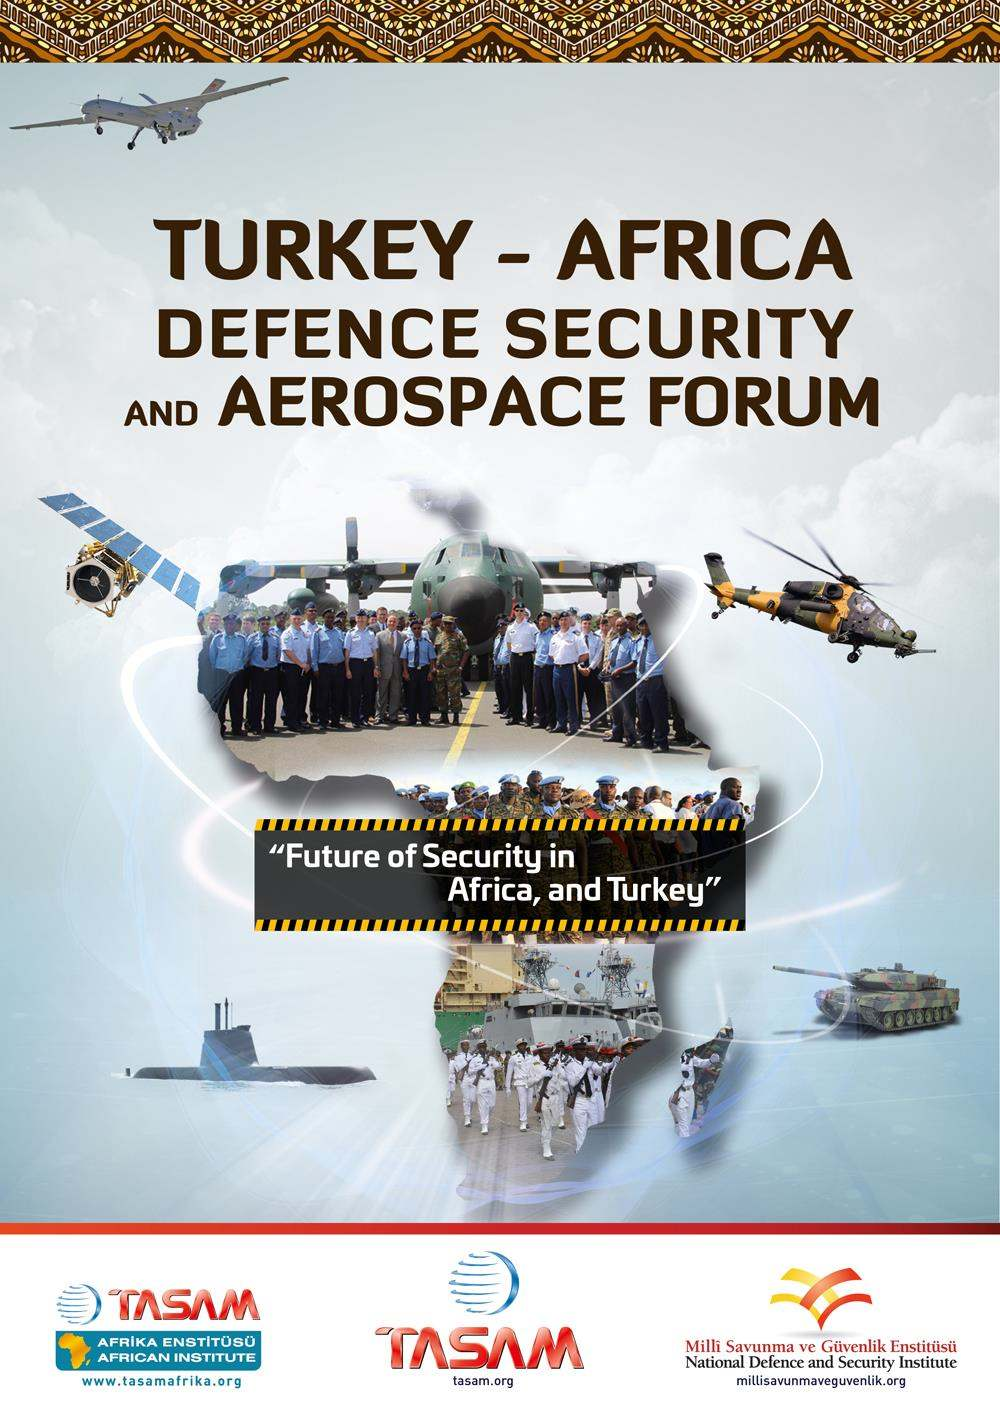 Turkey - Africa Defence, Security and Space Forum